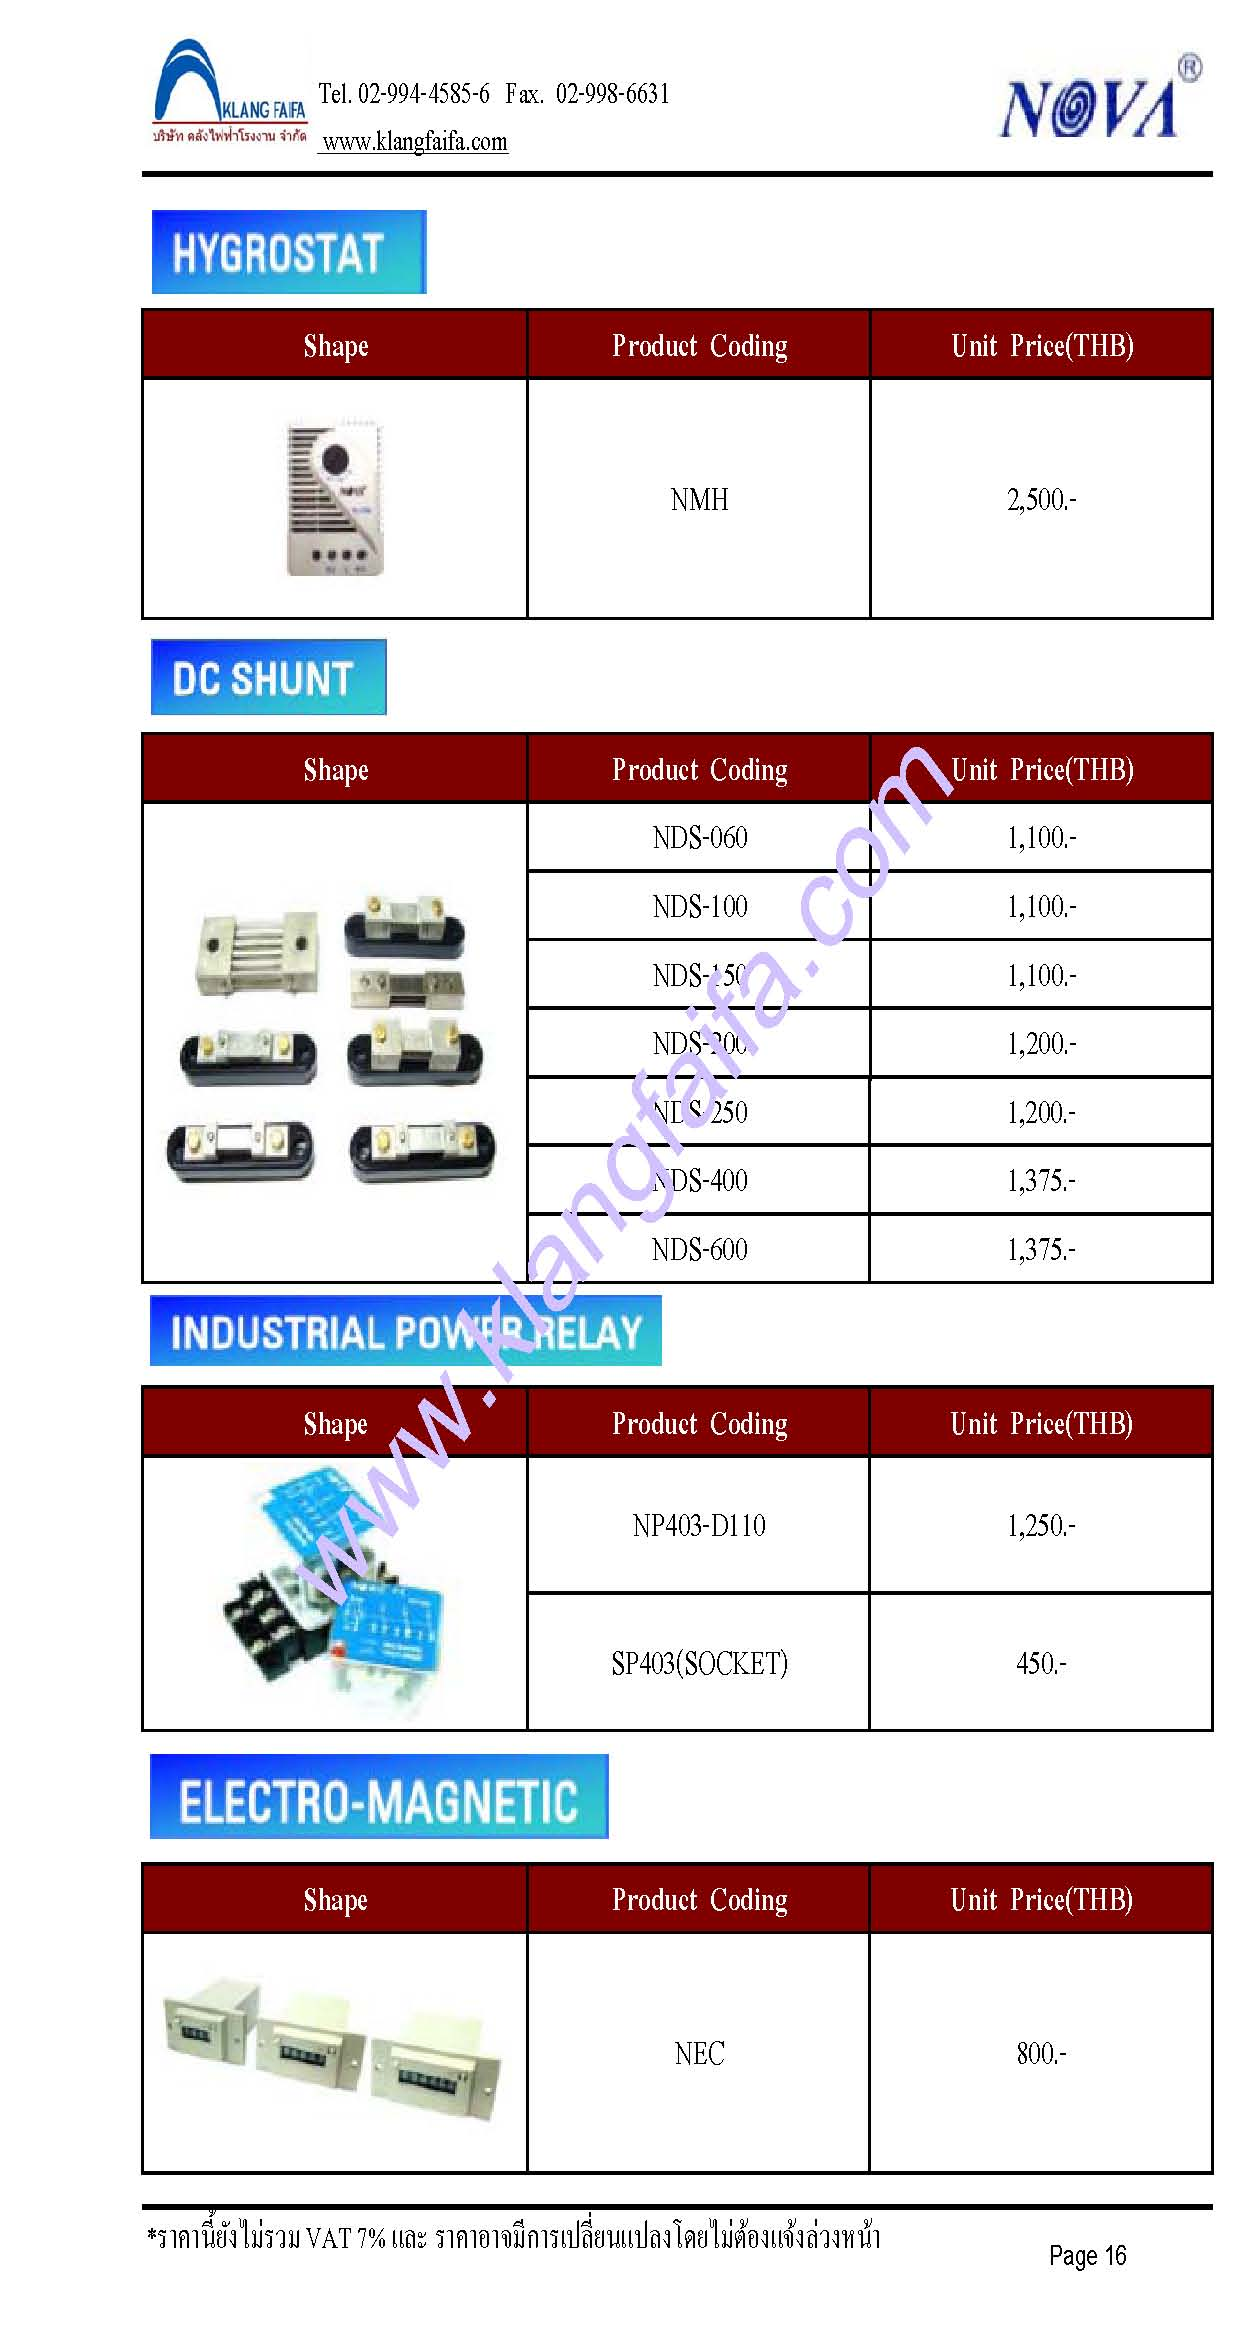 Nova, โนว่า, Pilot Lamp, LED Lamp, Push Botton,Semaphore, Selector Switch,Thermostat,CAM Switch, Current Transformer,DC Shunt, Power Relay, Line Lamp, Discrepancy Switch, Timer relay, Hygrostat, Panel Meter, Fuse Disconnector, Time Switch, Limit Switch, Space Heater, Niniature Buzzer, อุปกรณ์ไฟฟ้าราคาถูก